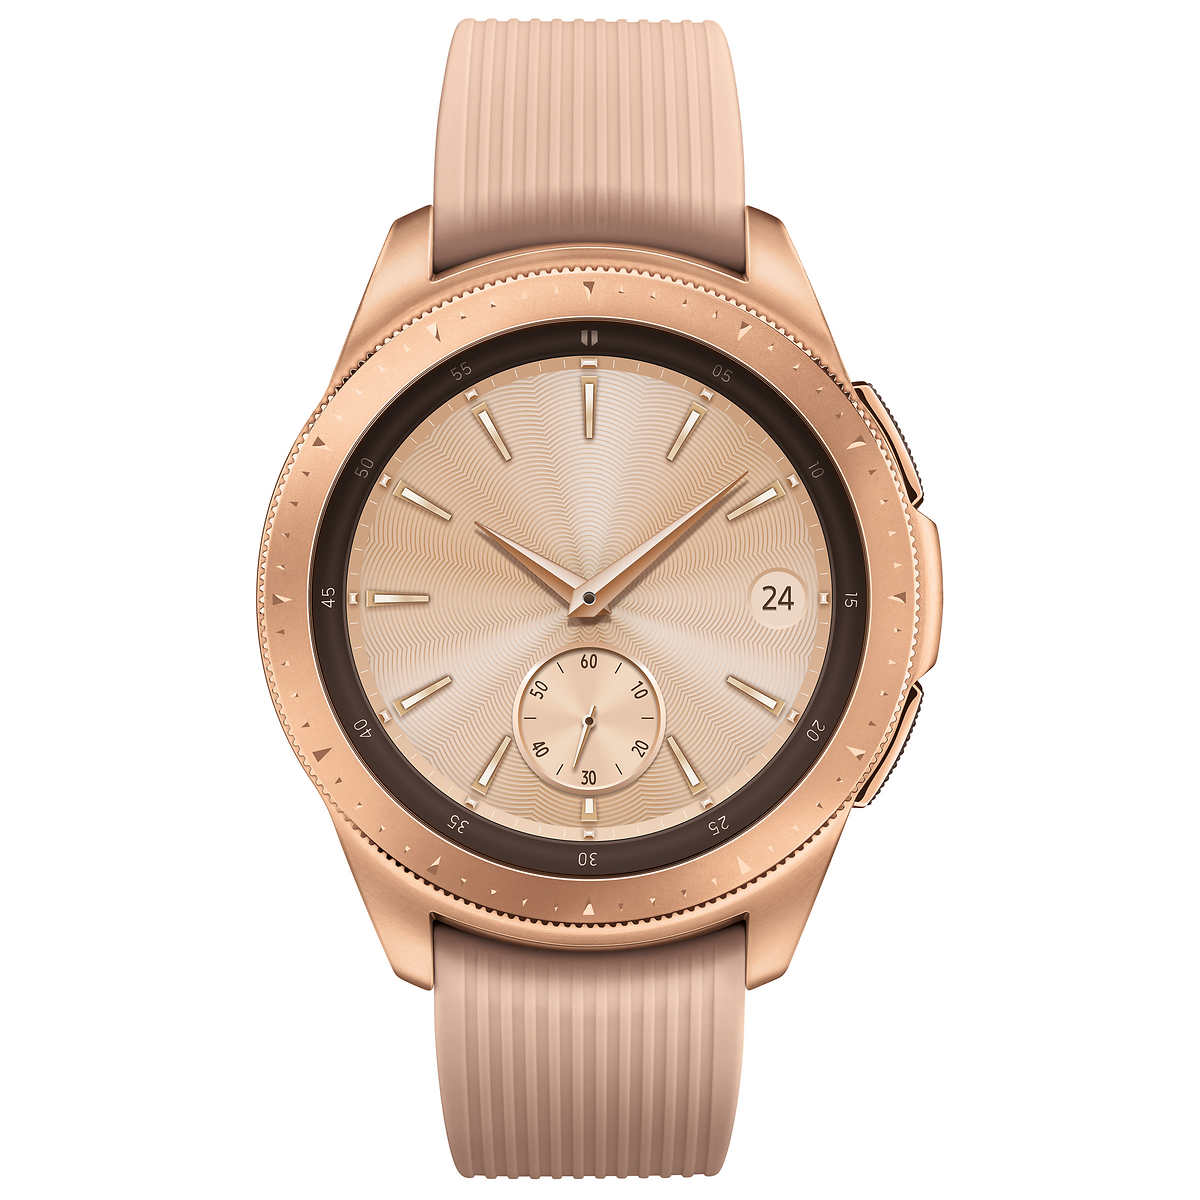 Samsung Galaxy Smartwatch 42mm - Rose Gold at Costco $239.99